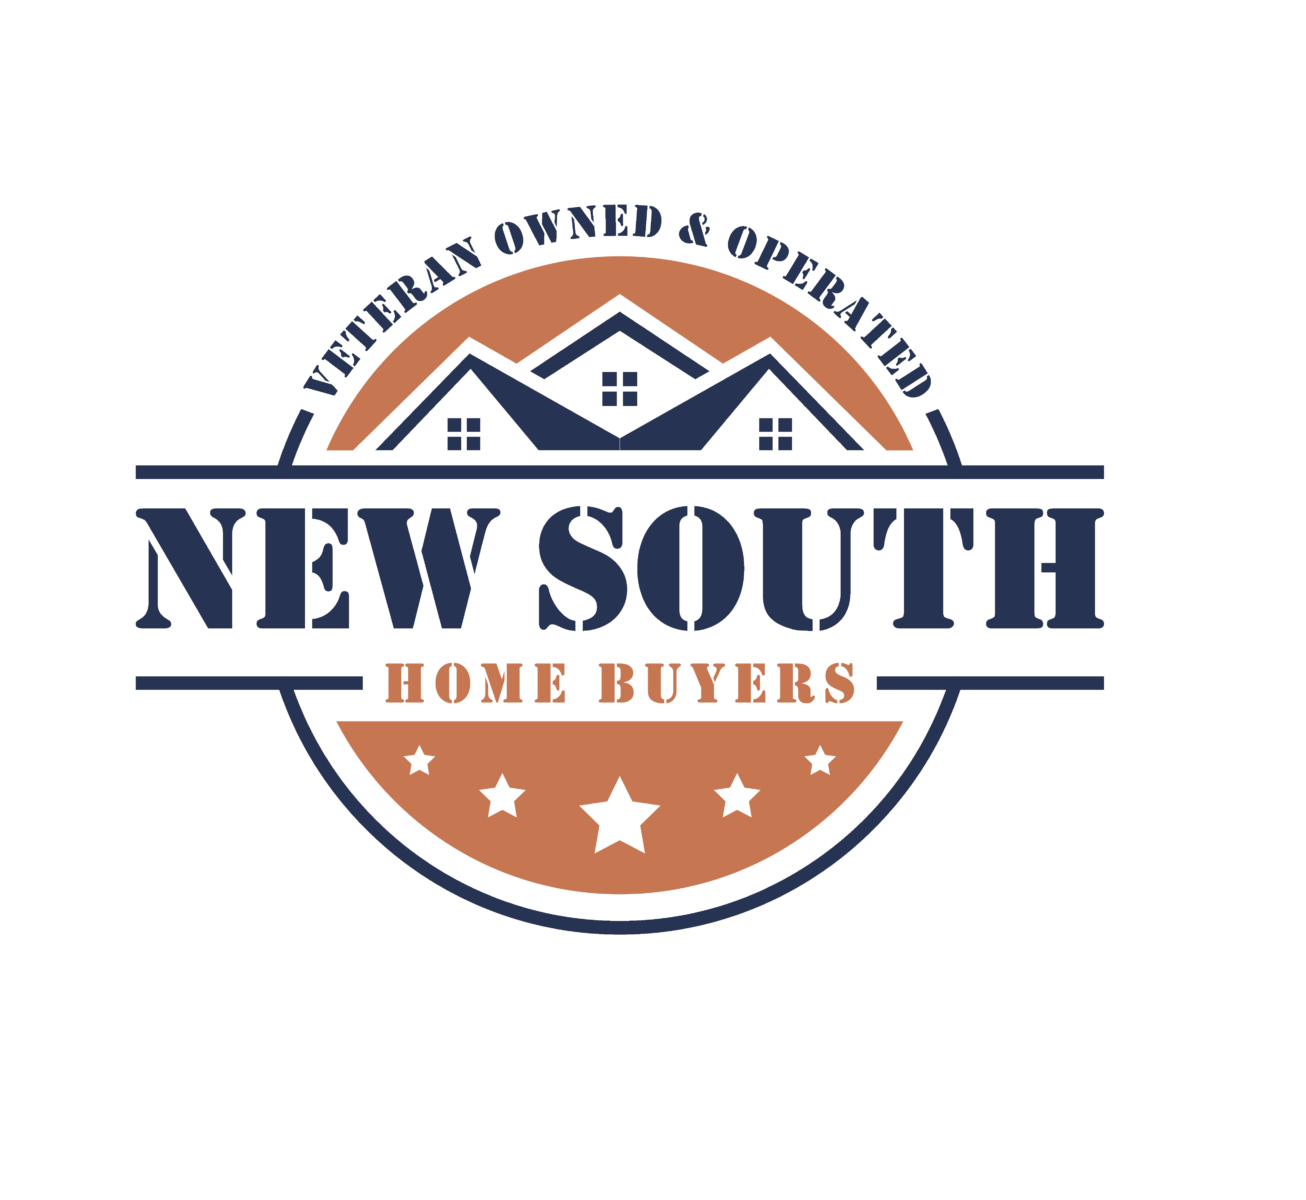 New South Home Buyers logo